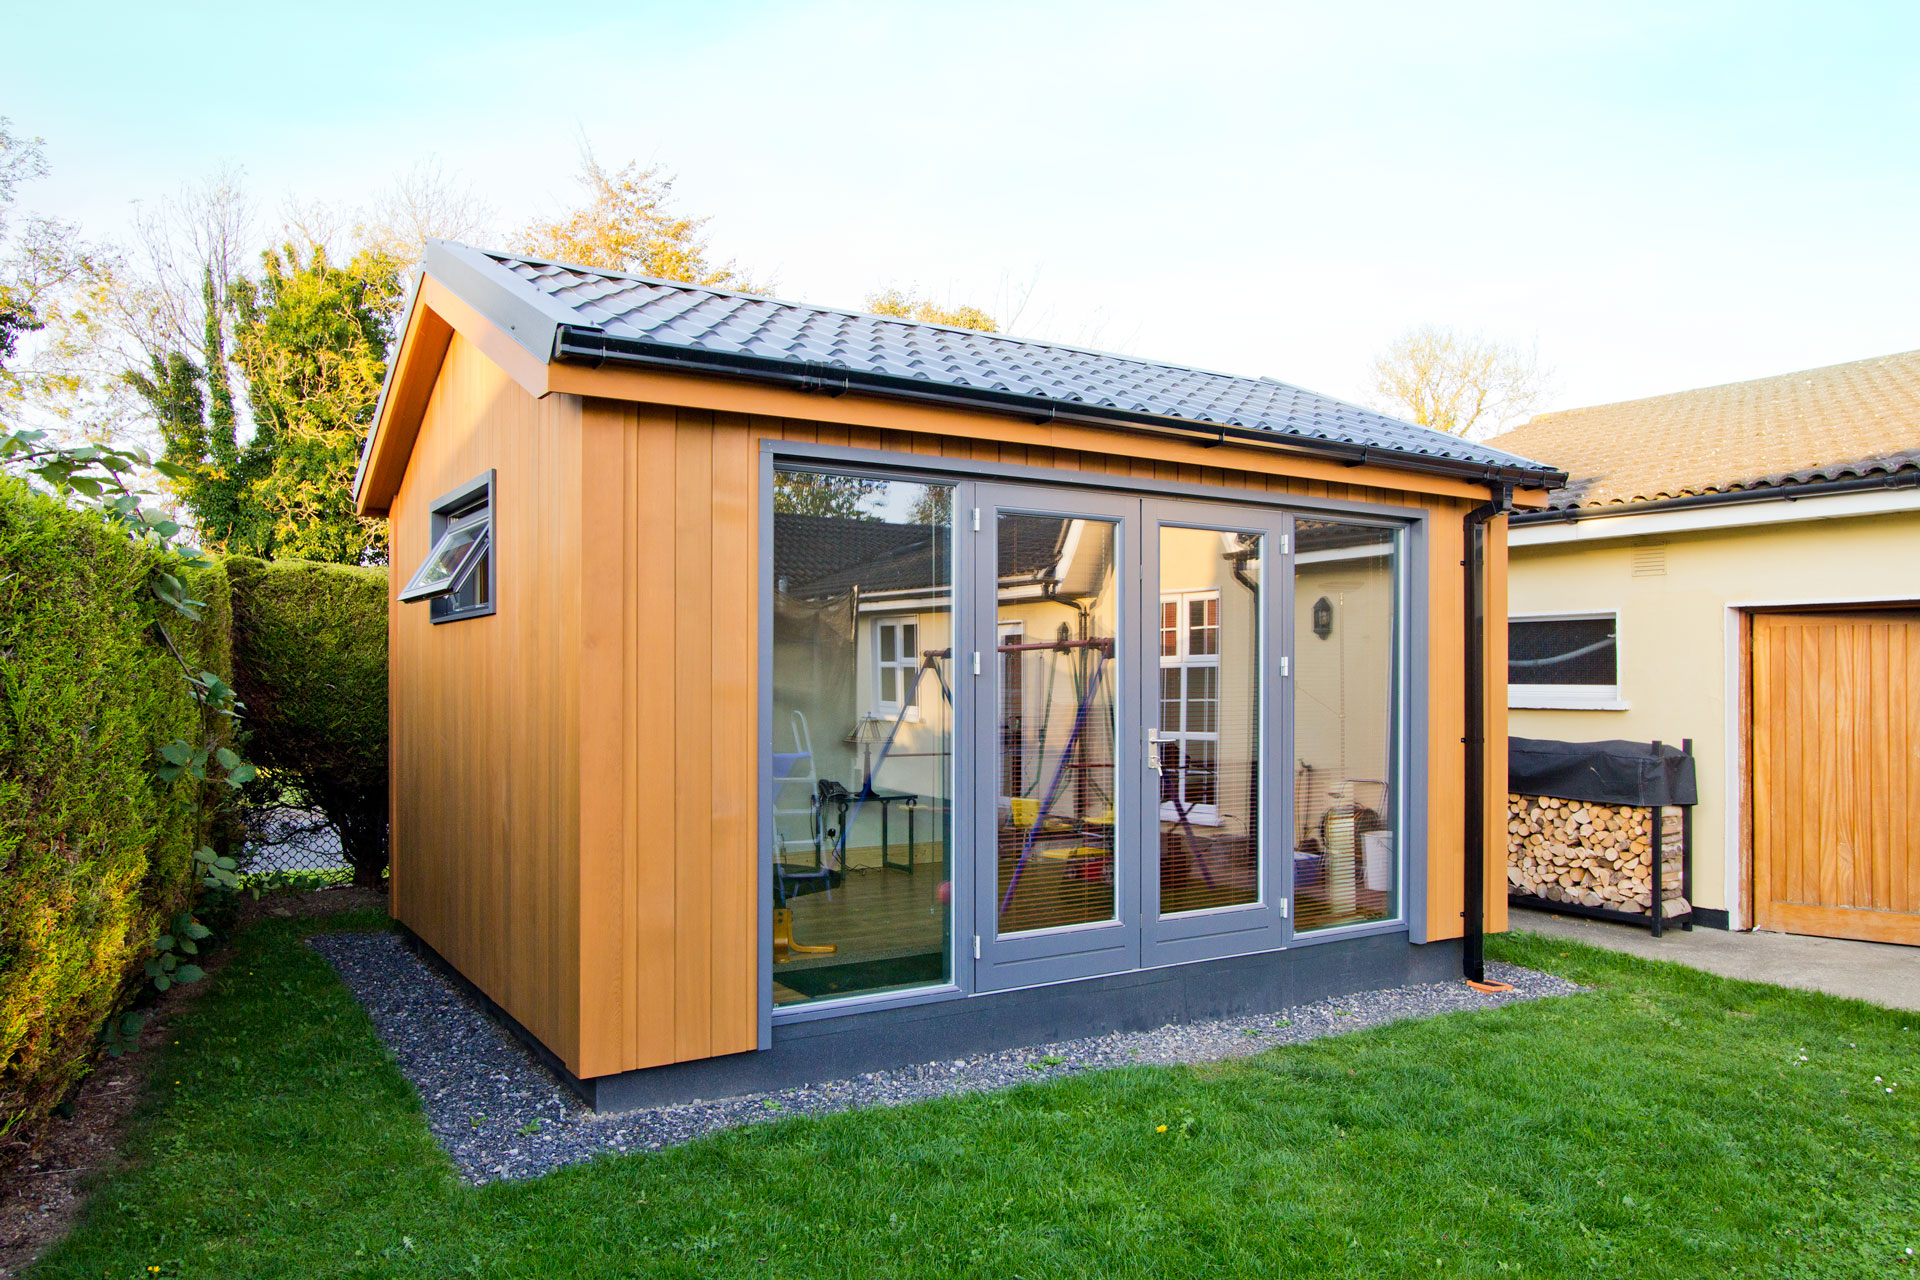 Office pods ideas gallery garden office ideas gallery for Garden office design